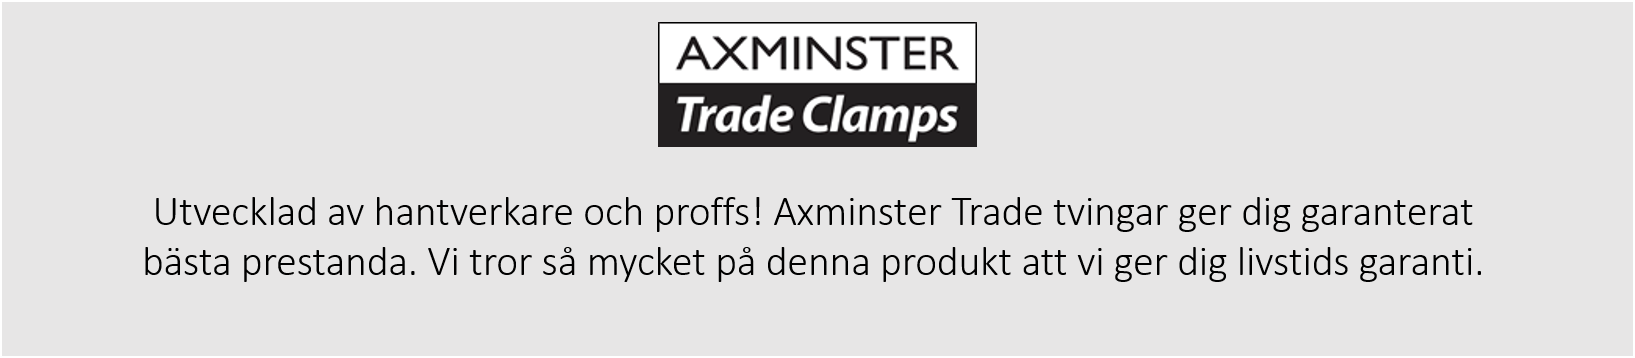 Axmingster trade clamps